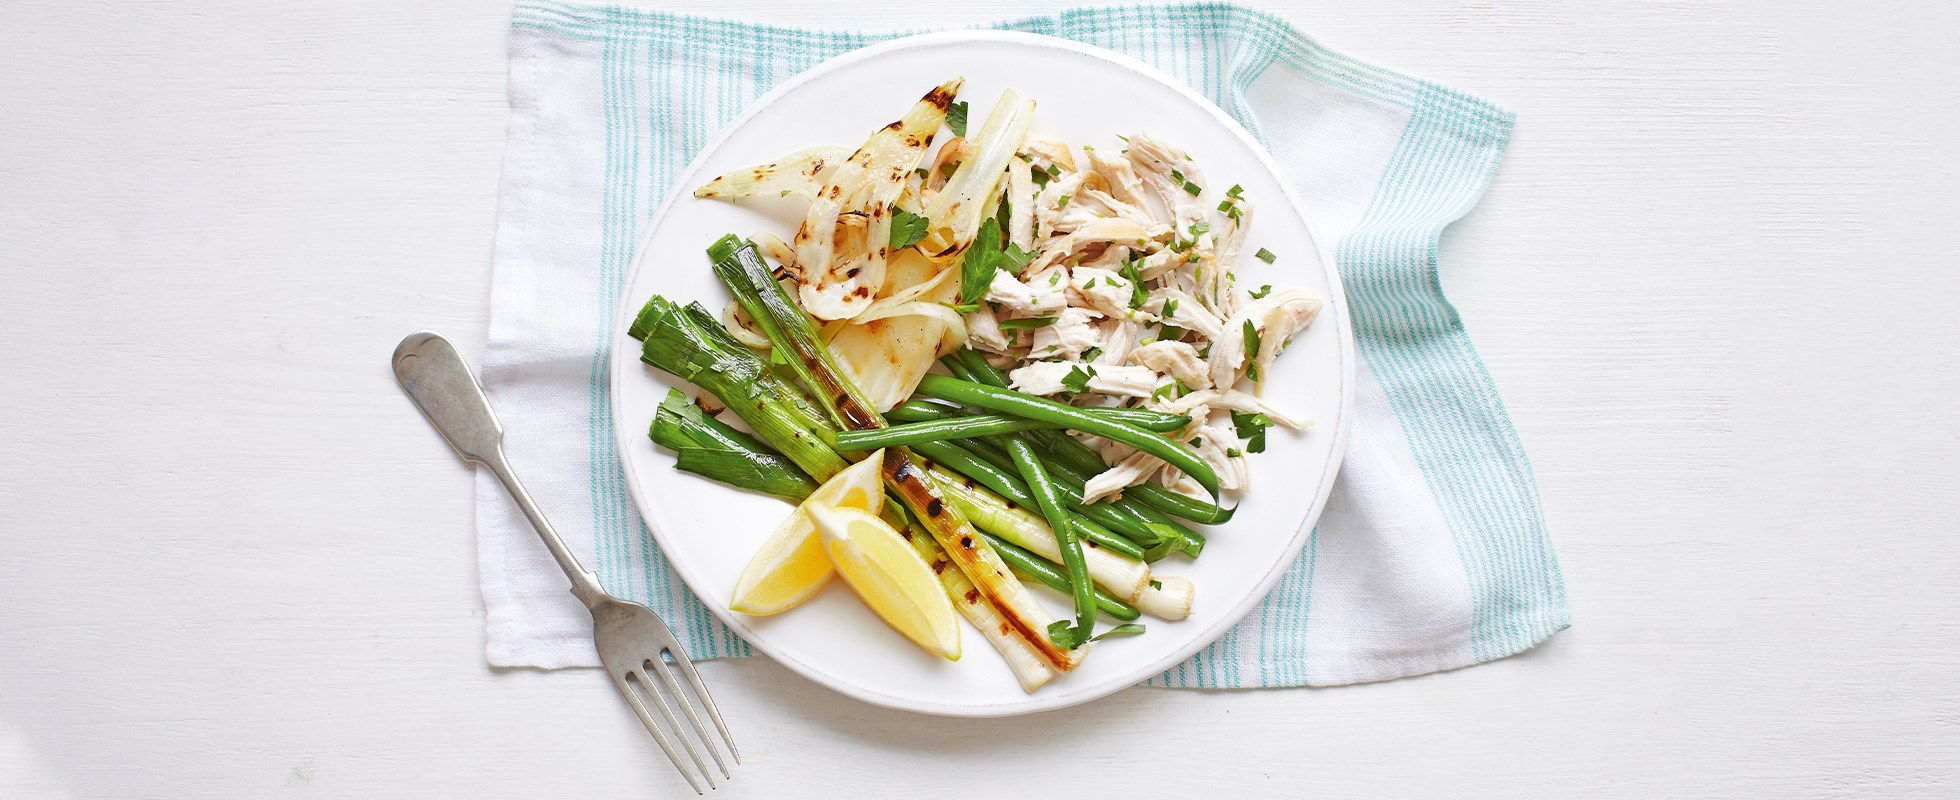 Lemon chicken with charred leeks and fennel